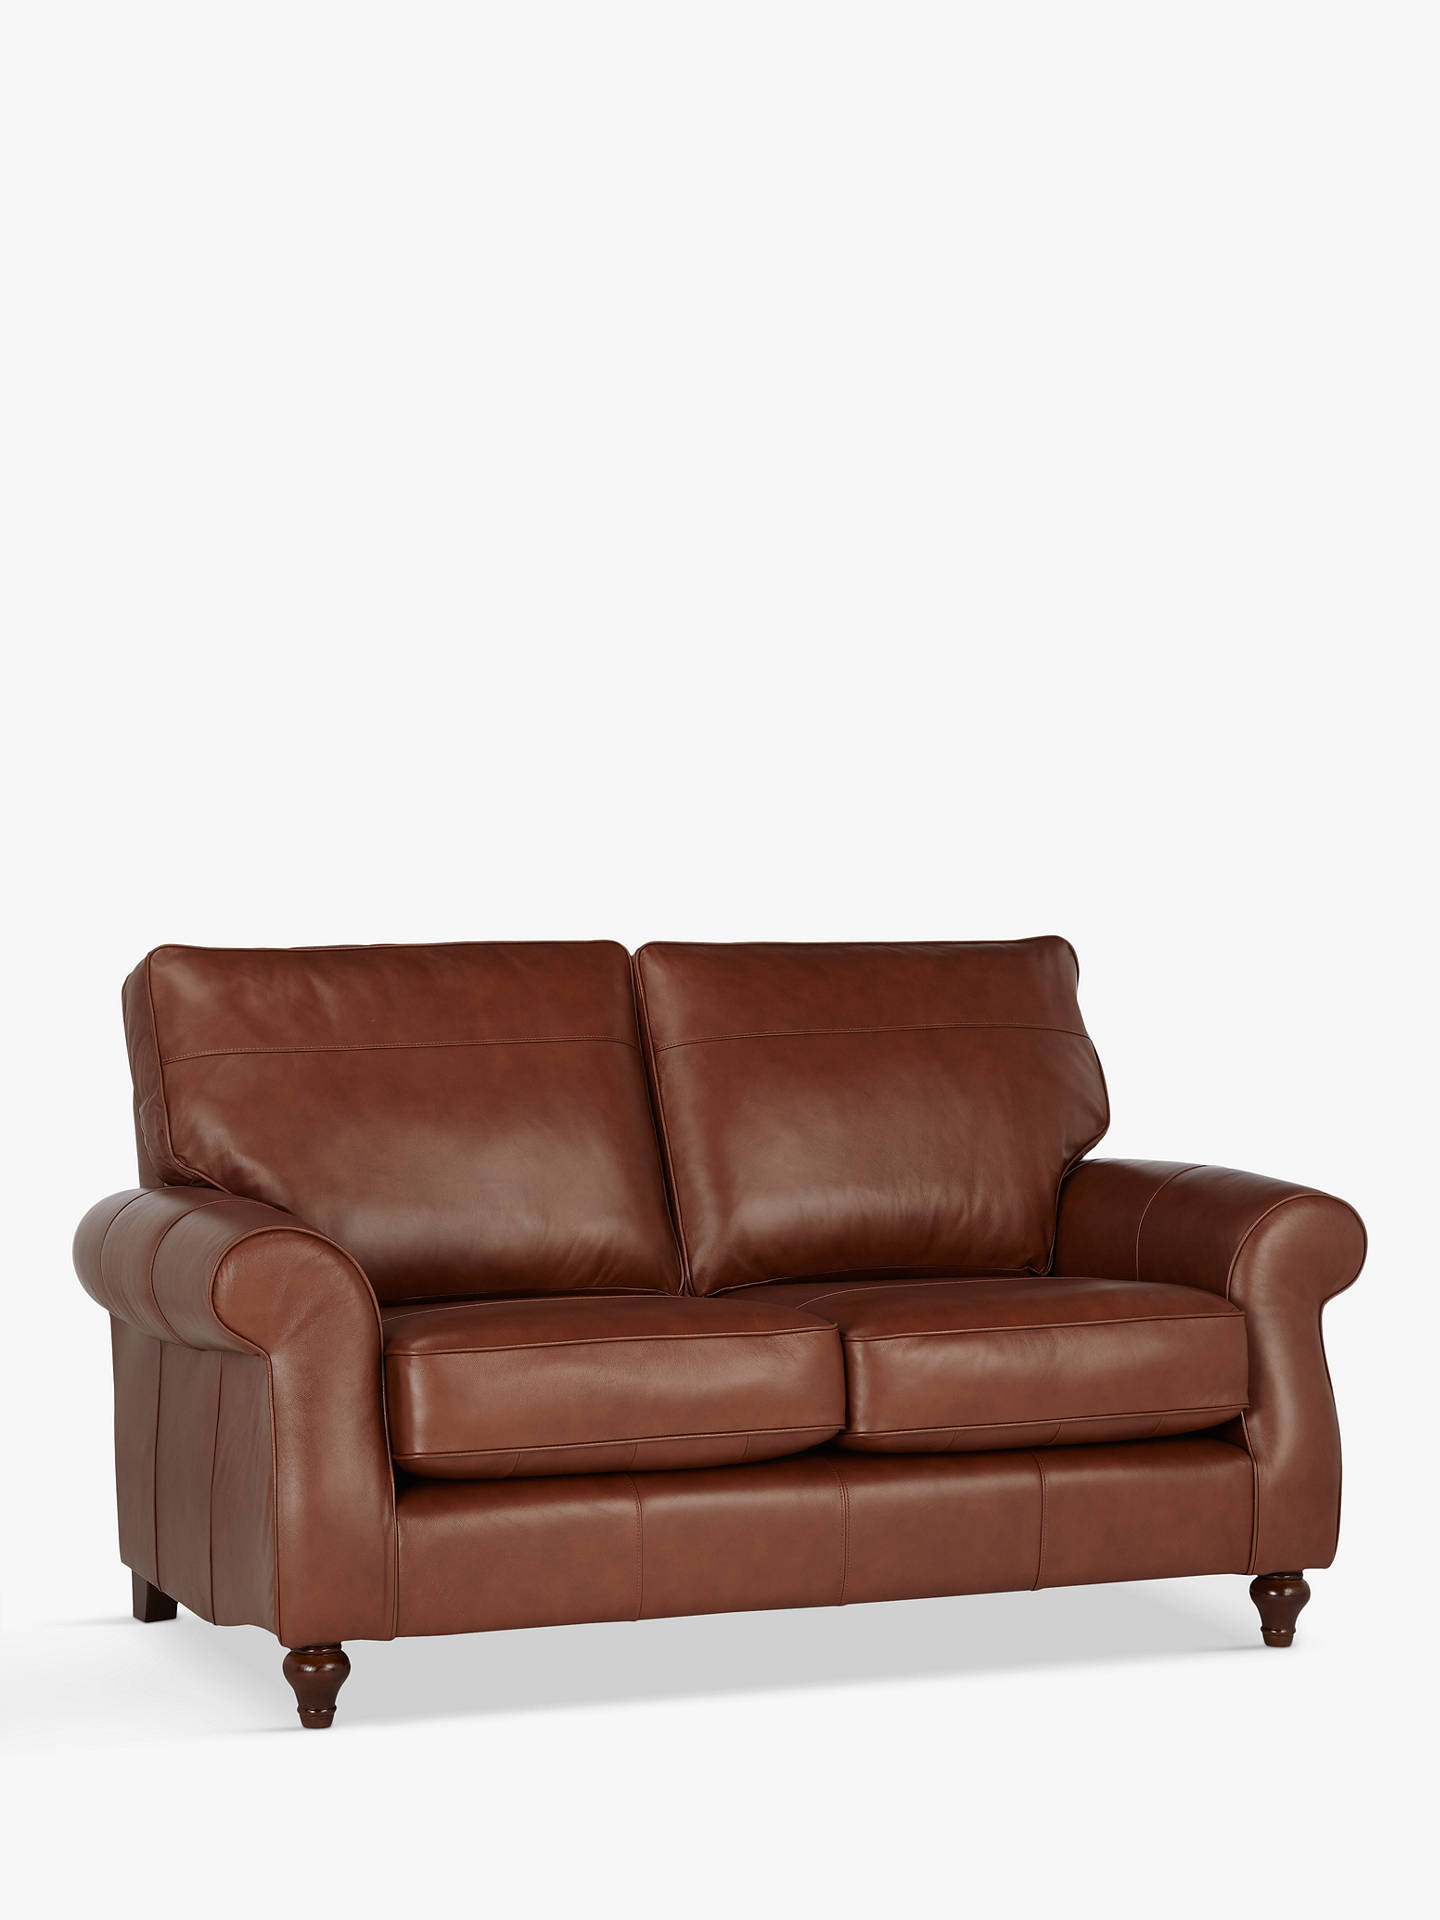 John Lewis Hannah Medium 2 Seater Leather Sofa Dark Leg Contempo Castanga Online At